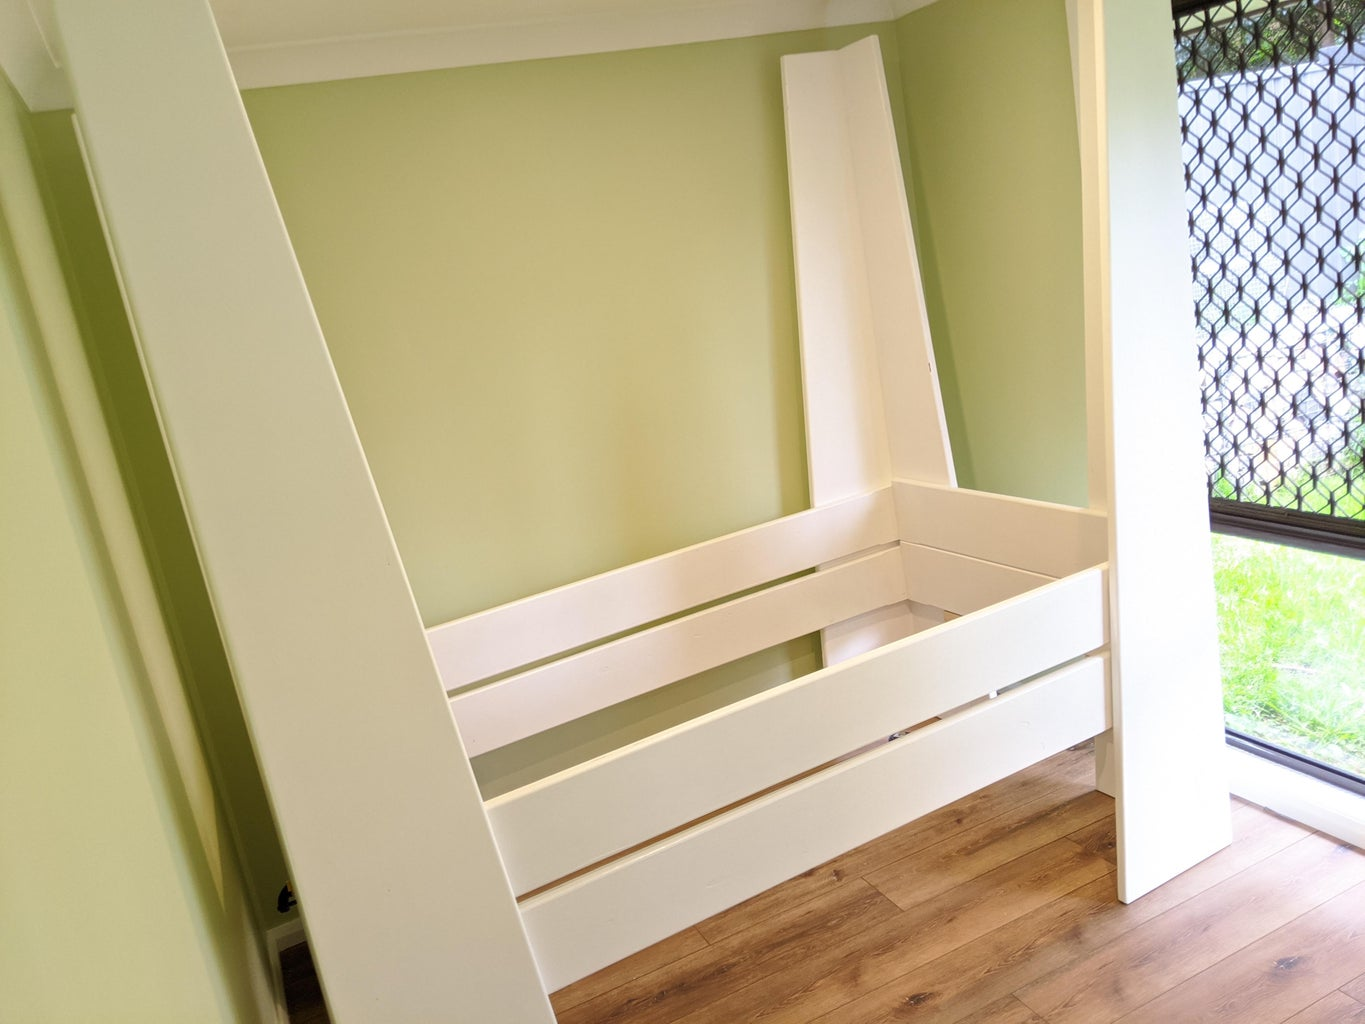 Make the Bottom and Top Bed Frames by Joining Together Your Rails and Ends